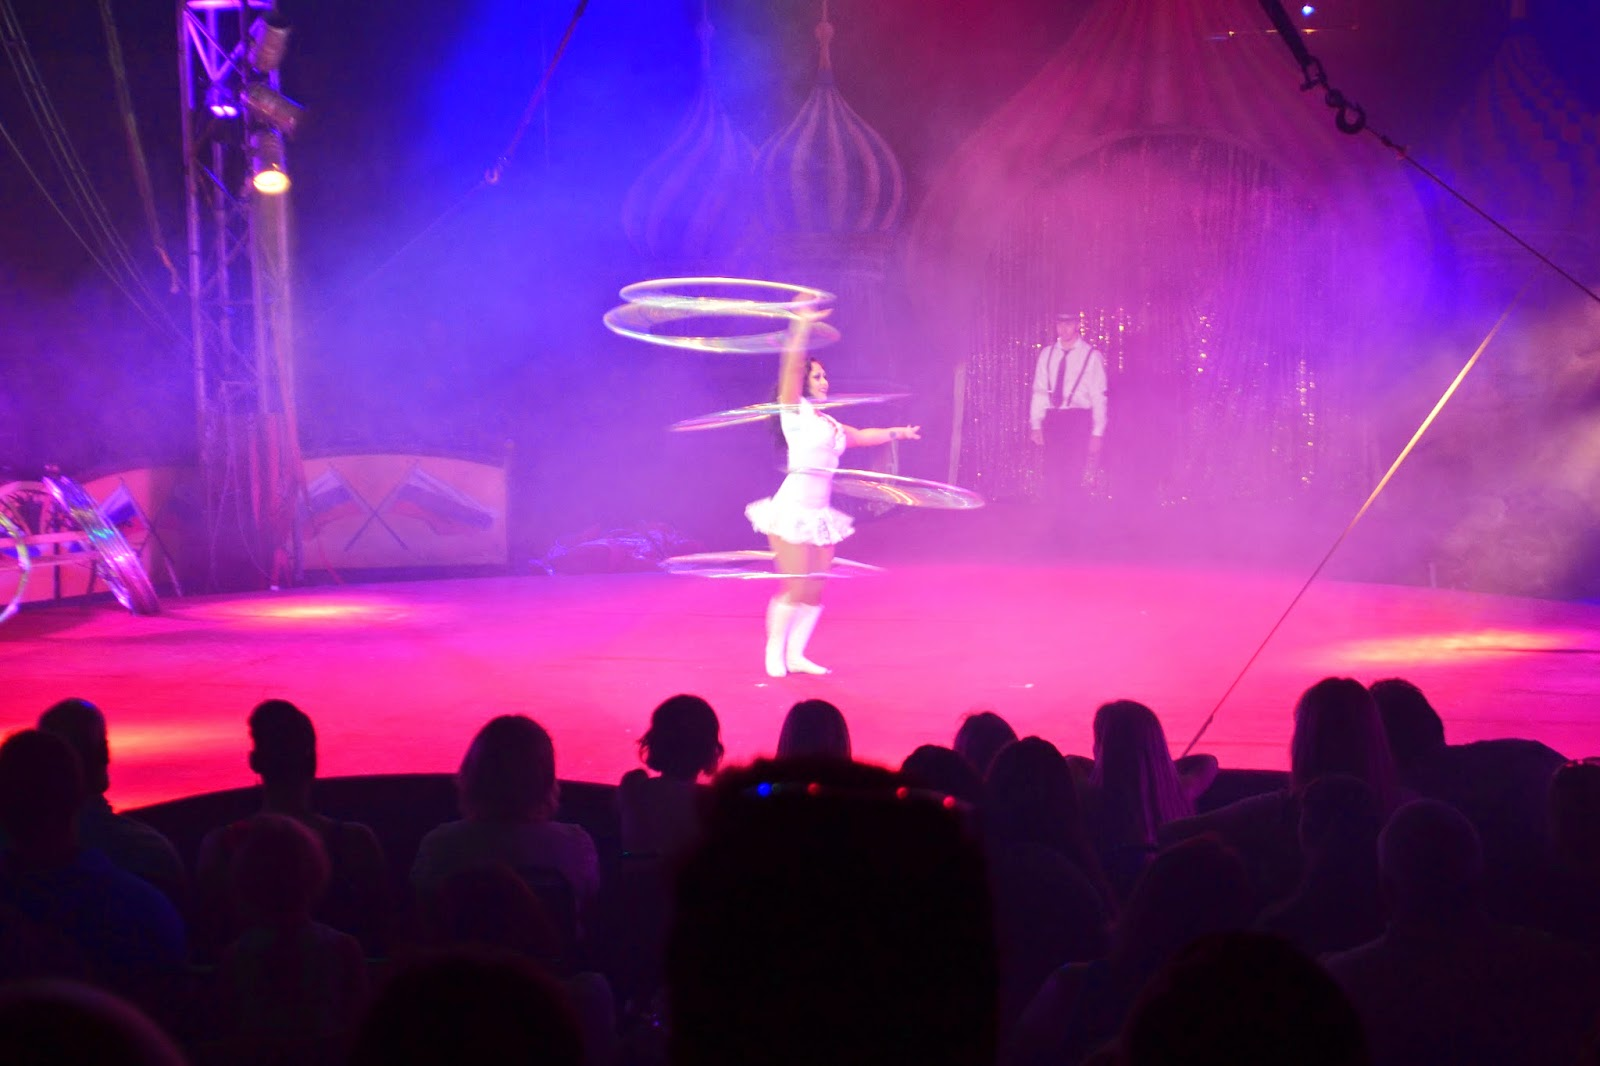 a hula hoop girl spinning at least 5 hula hoops around herself